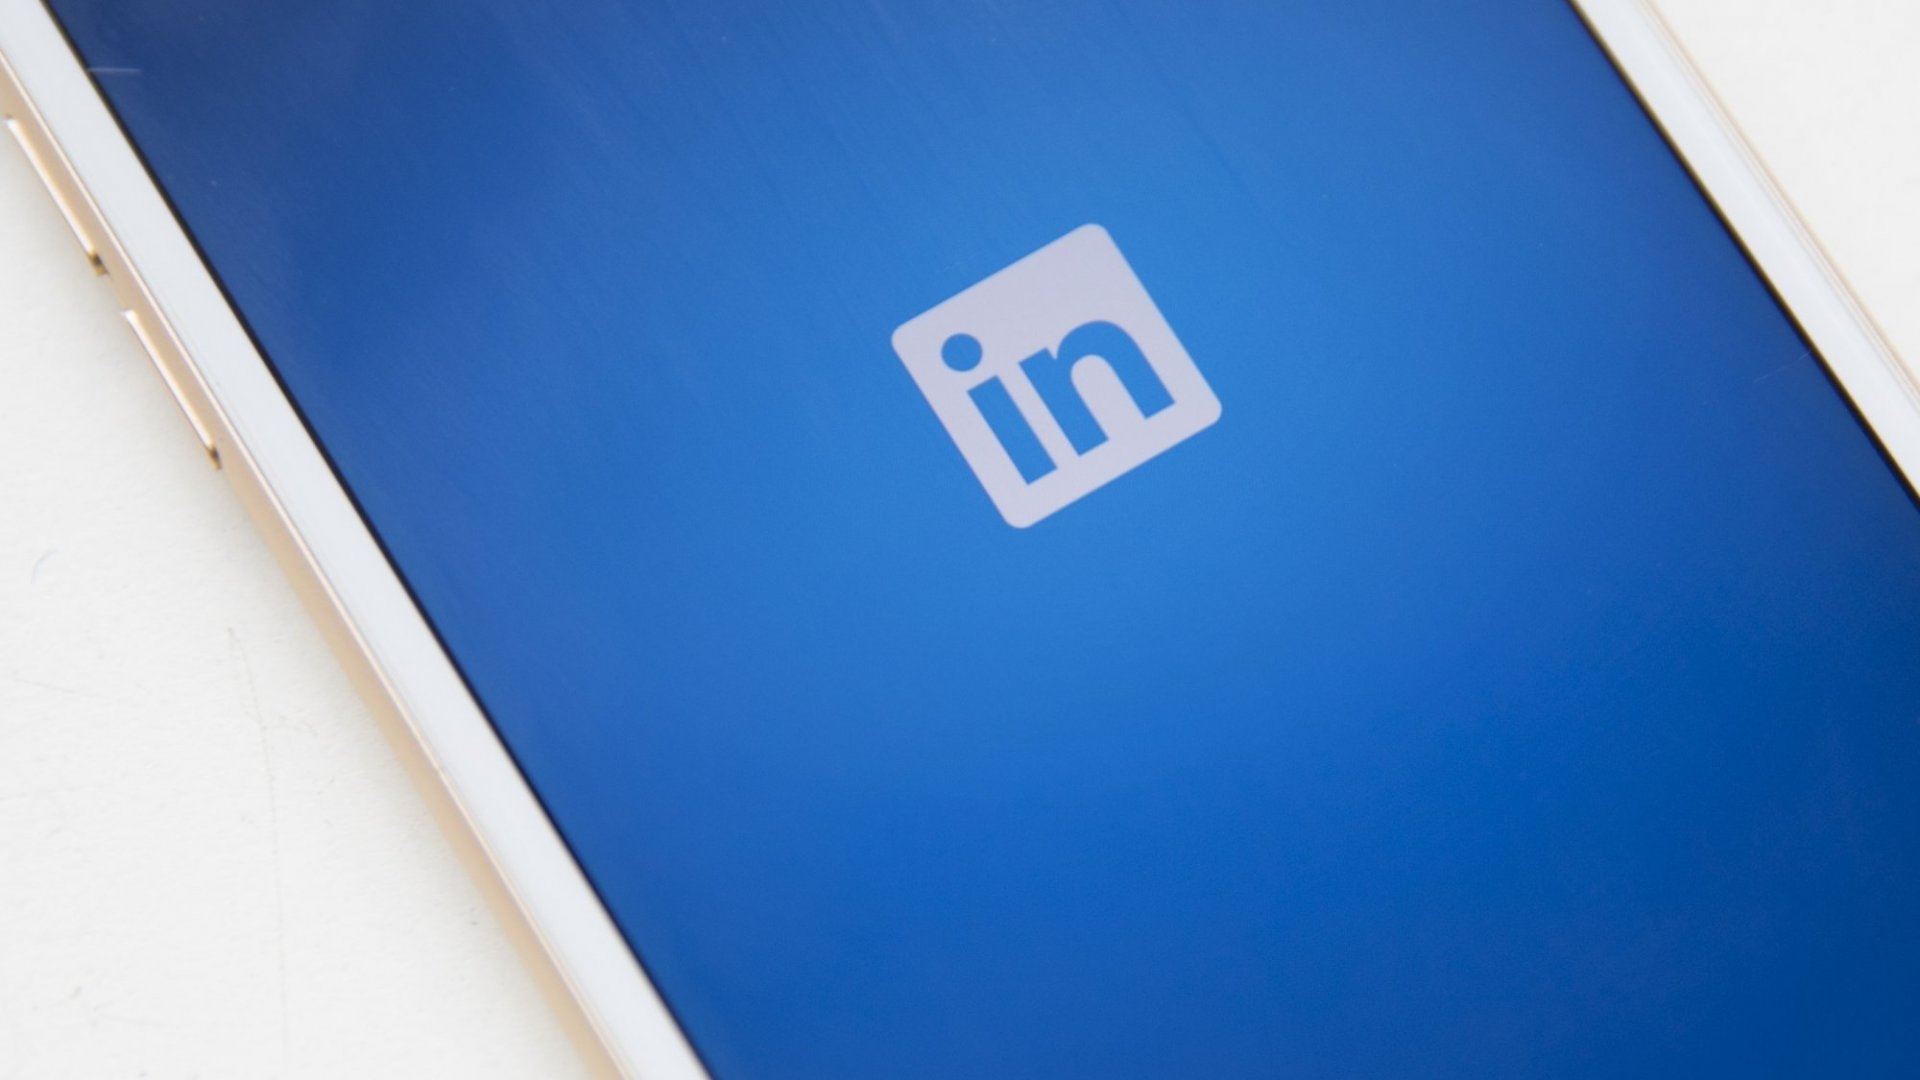 4 Best Practices to Follow When Connecting With Someone You Don't Know on LinkedIn